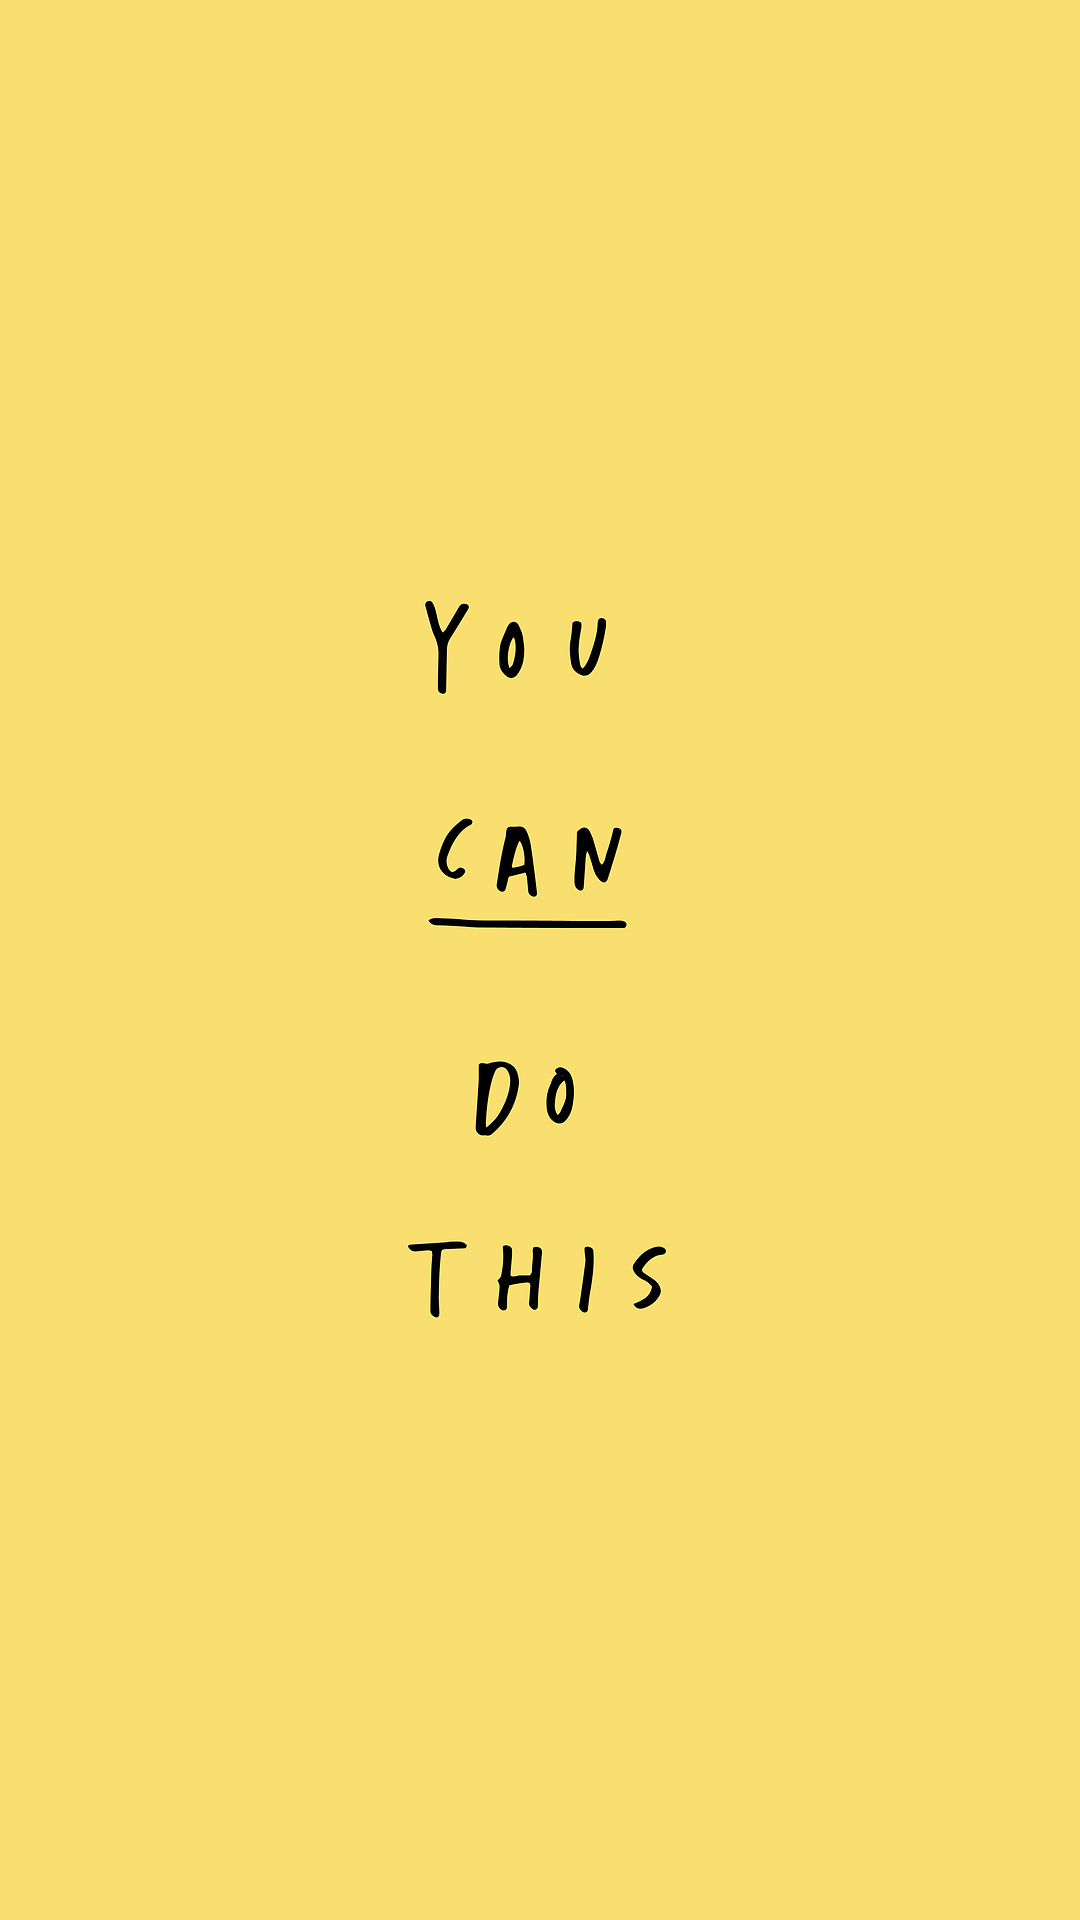 Of Yellow Color Names For Your Inspiration A simple phrase but one to live by! You can do this!  .ukA simple phrase but one to live by! You can do this!  .uk